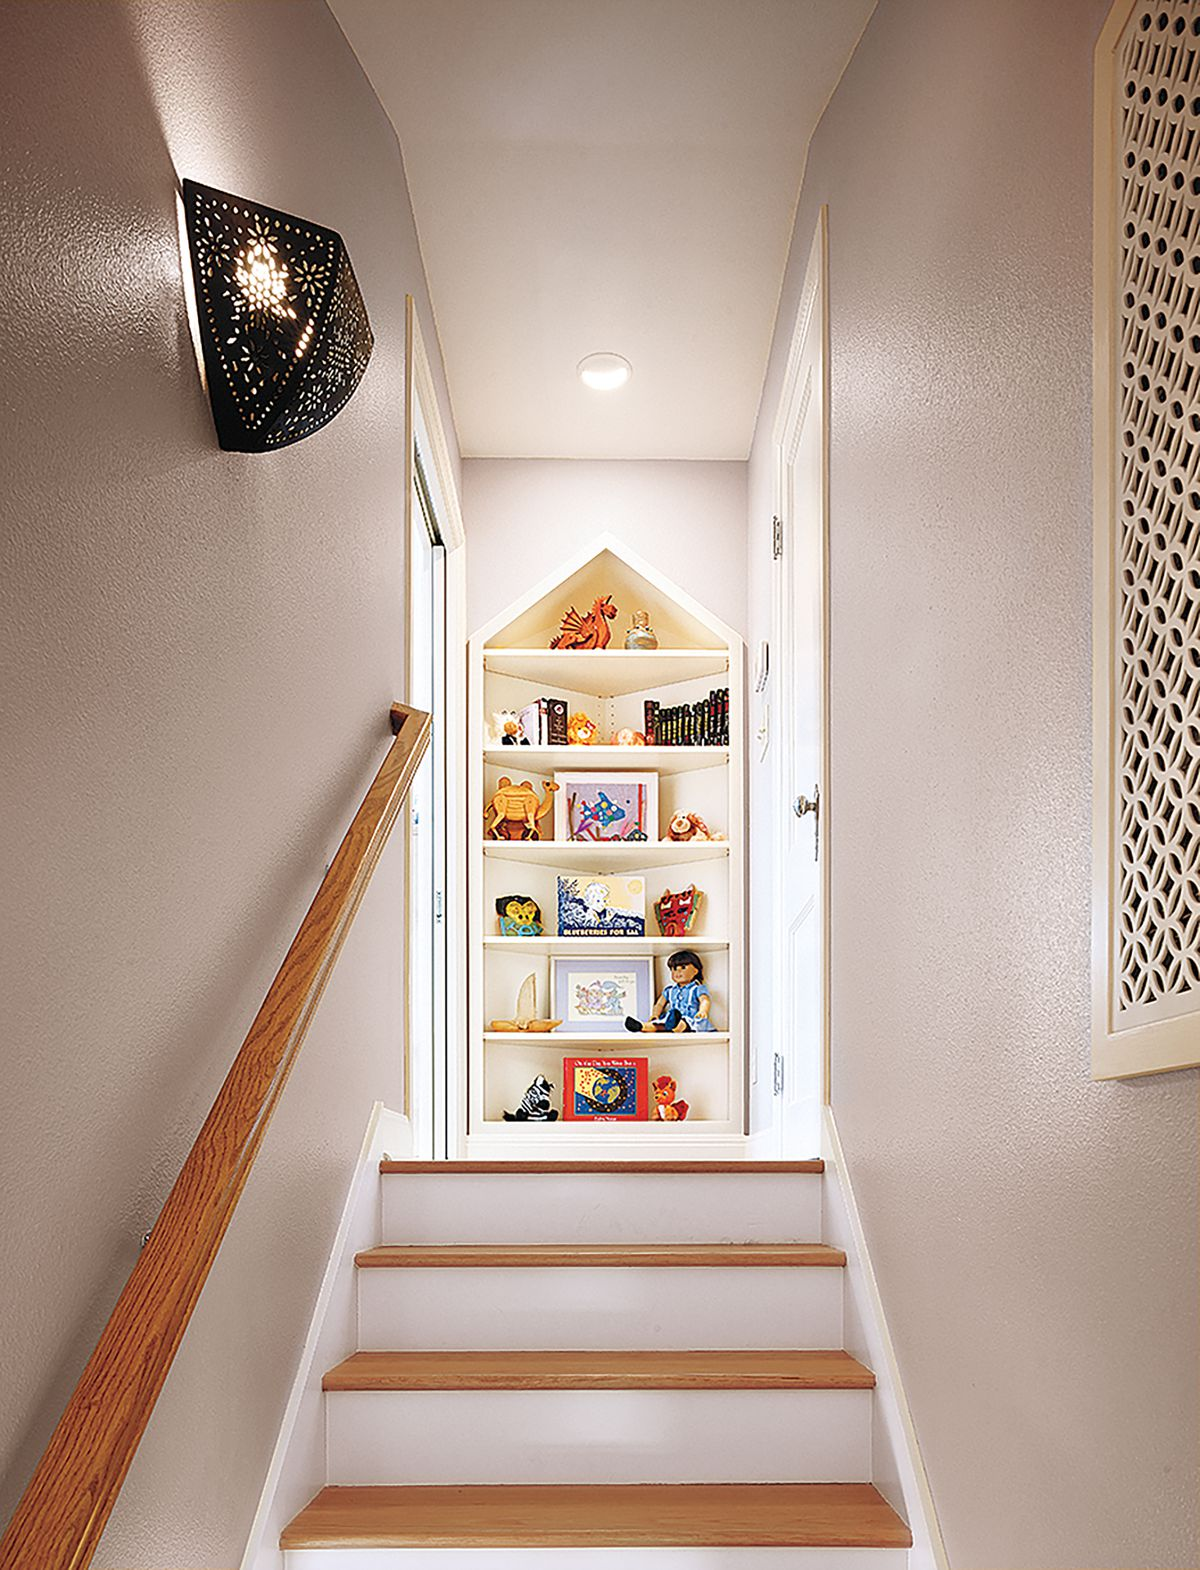 Stairwell leading to attic.